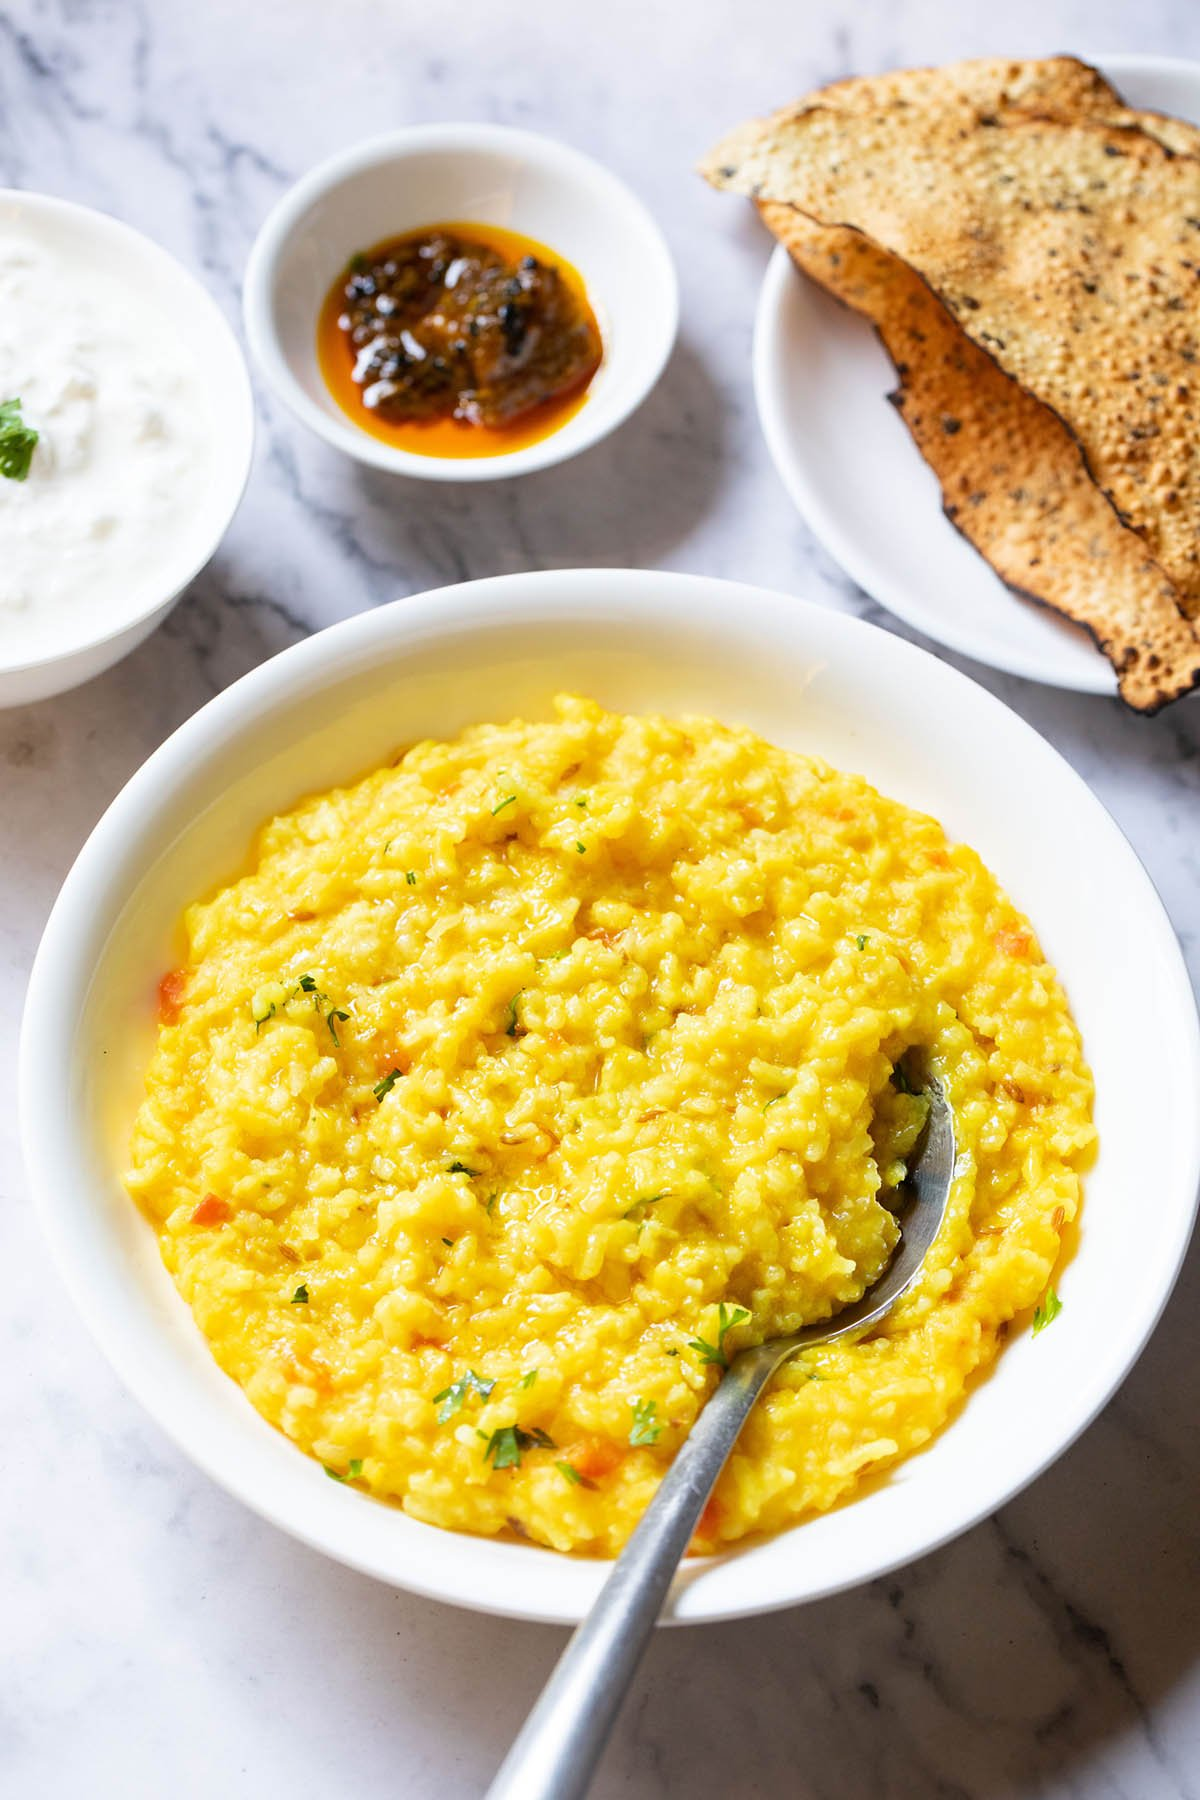 top shot of moong dal khichdi in a bowl with a spoon inside with sides of curd, mango pickle in white bowls and roasted papad served in a white plate